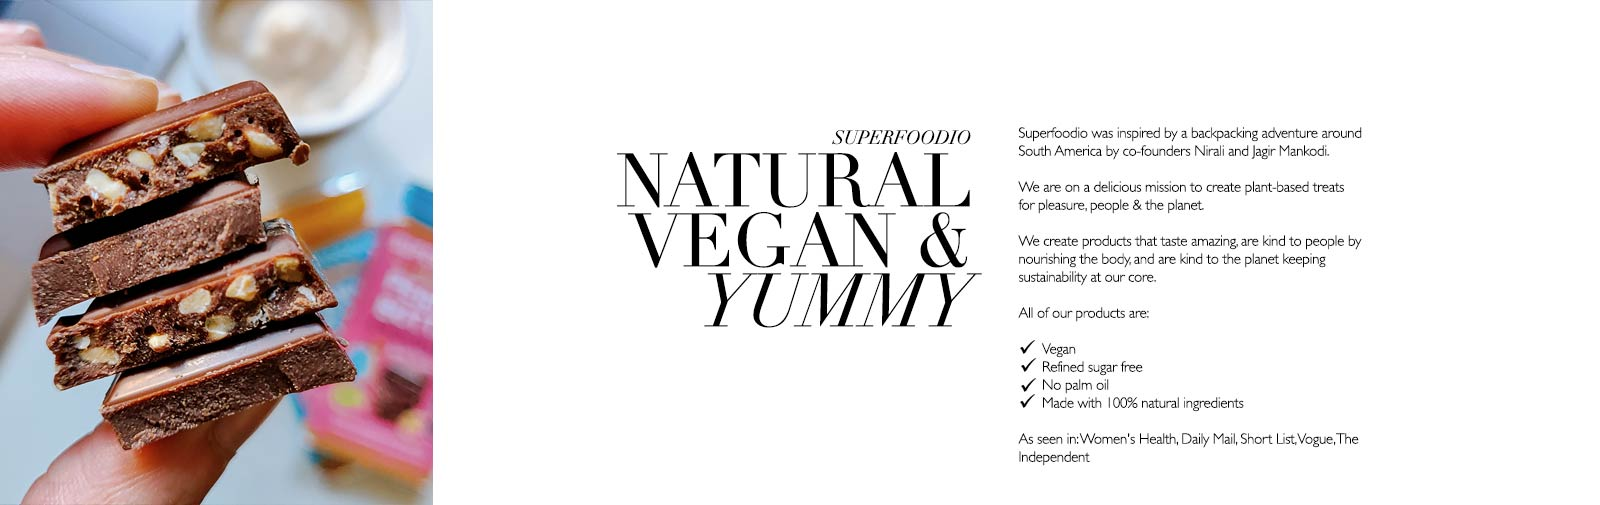 SUPERFOODIO - NATURAL VEGAN & YUMMY - Superfoodio - Superfoodio was inspired by a backpacking adventure around South America by co-founders Nirali and Jagir Mankodi.  We are on a delicious mission to create plant-based treats for pleasure, people & the planet.  We create products that taste amazing, are kind to people by nourishing the body, and are kind to the planet keeping sustainability at our core.  All of our products are:  ✔Vegan ✔Refined sugar free ✔No palm oil ✔Made with 100% natural ingredients.  As seen in: Women's Health, Daily Mail, Short List, Vogue, The Independent